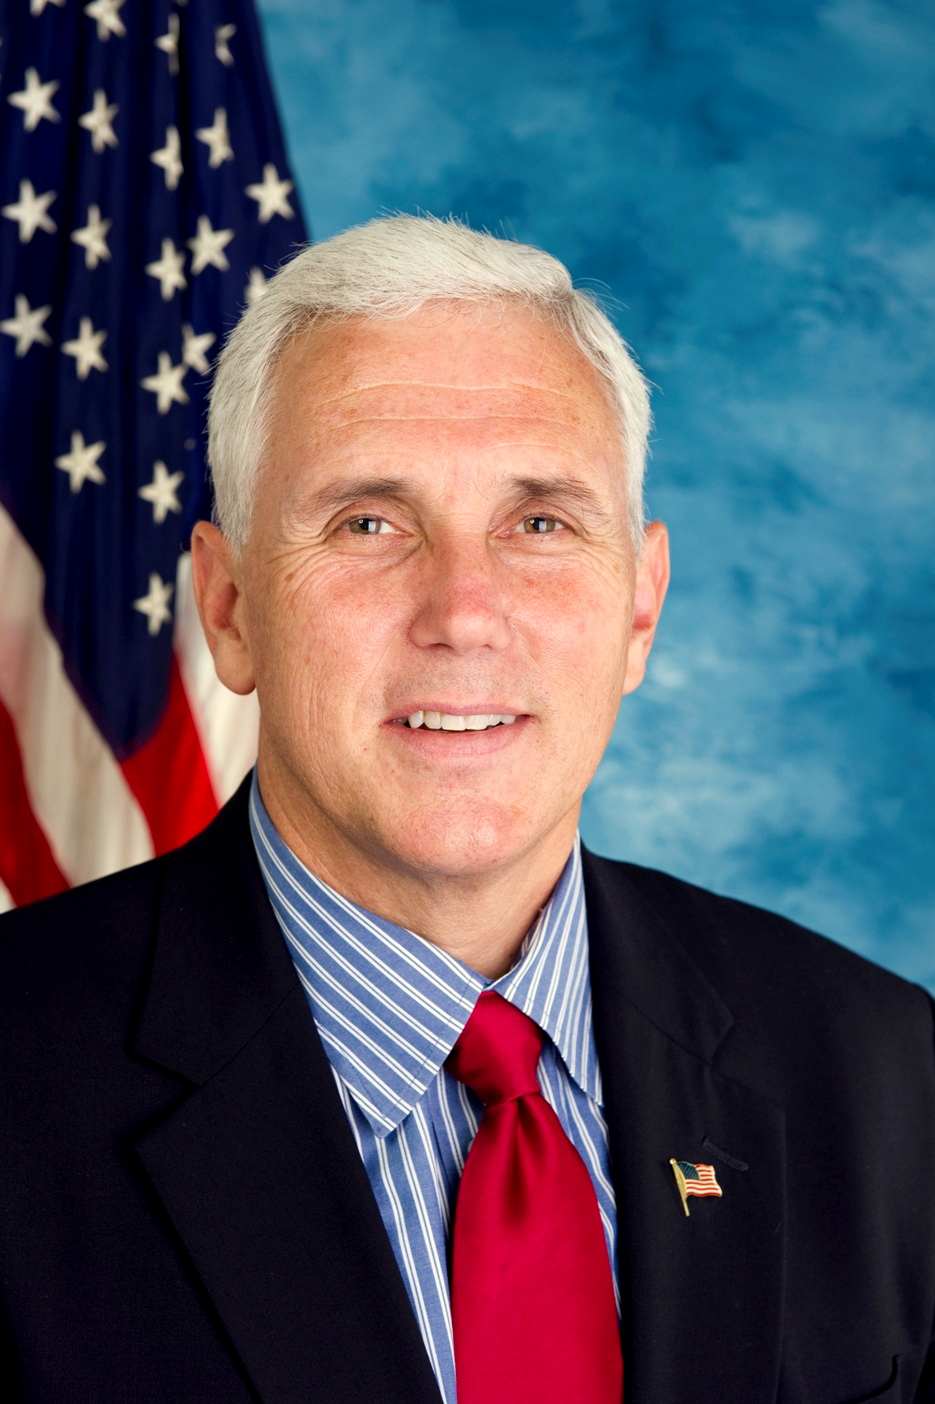 File:Mike Pence, official portrait, 112th Congress.jpg ...